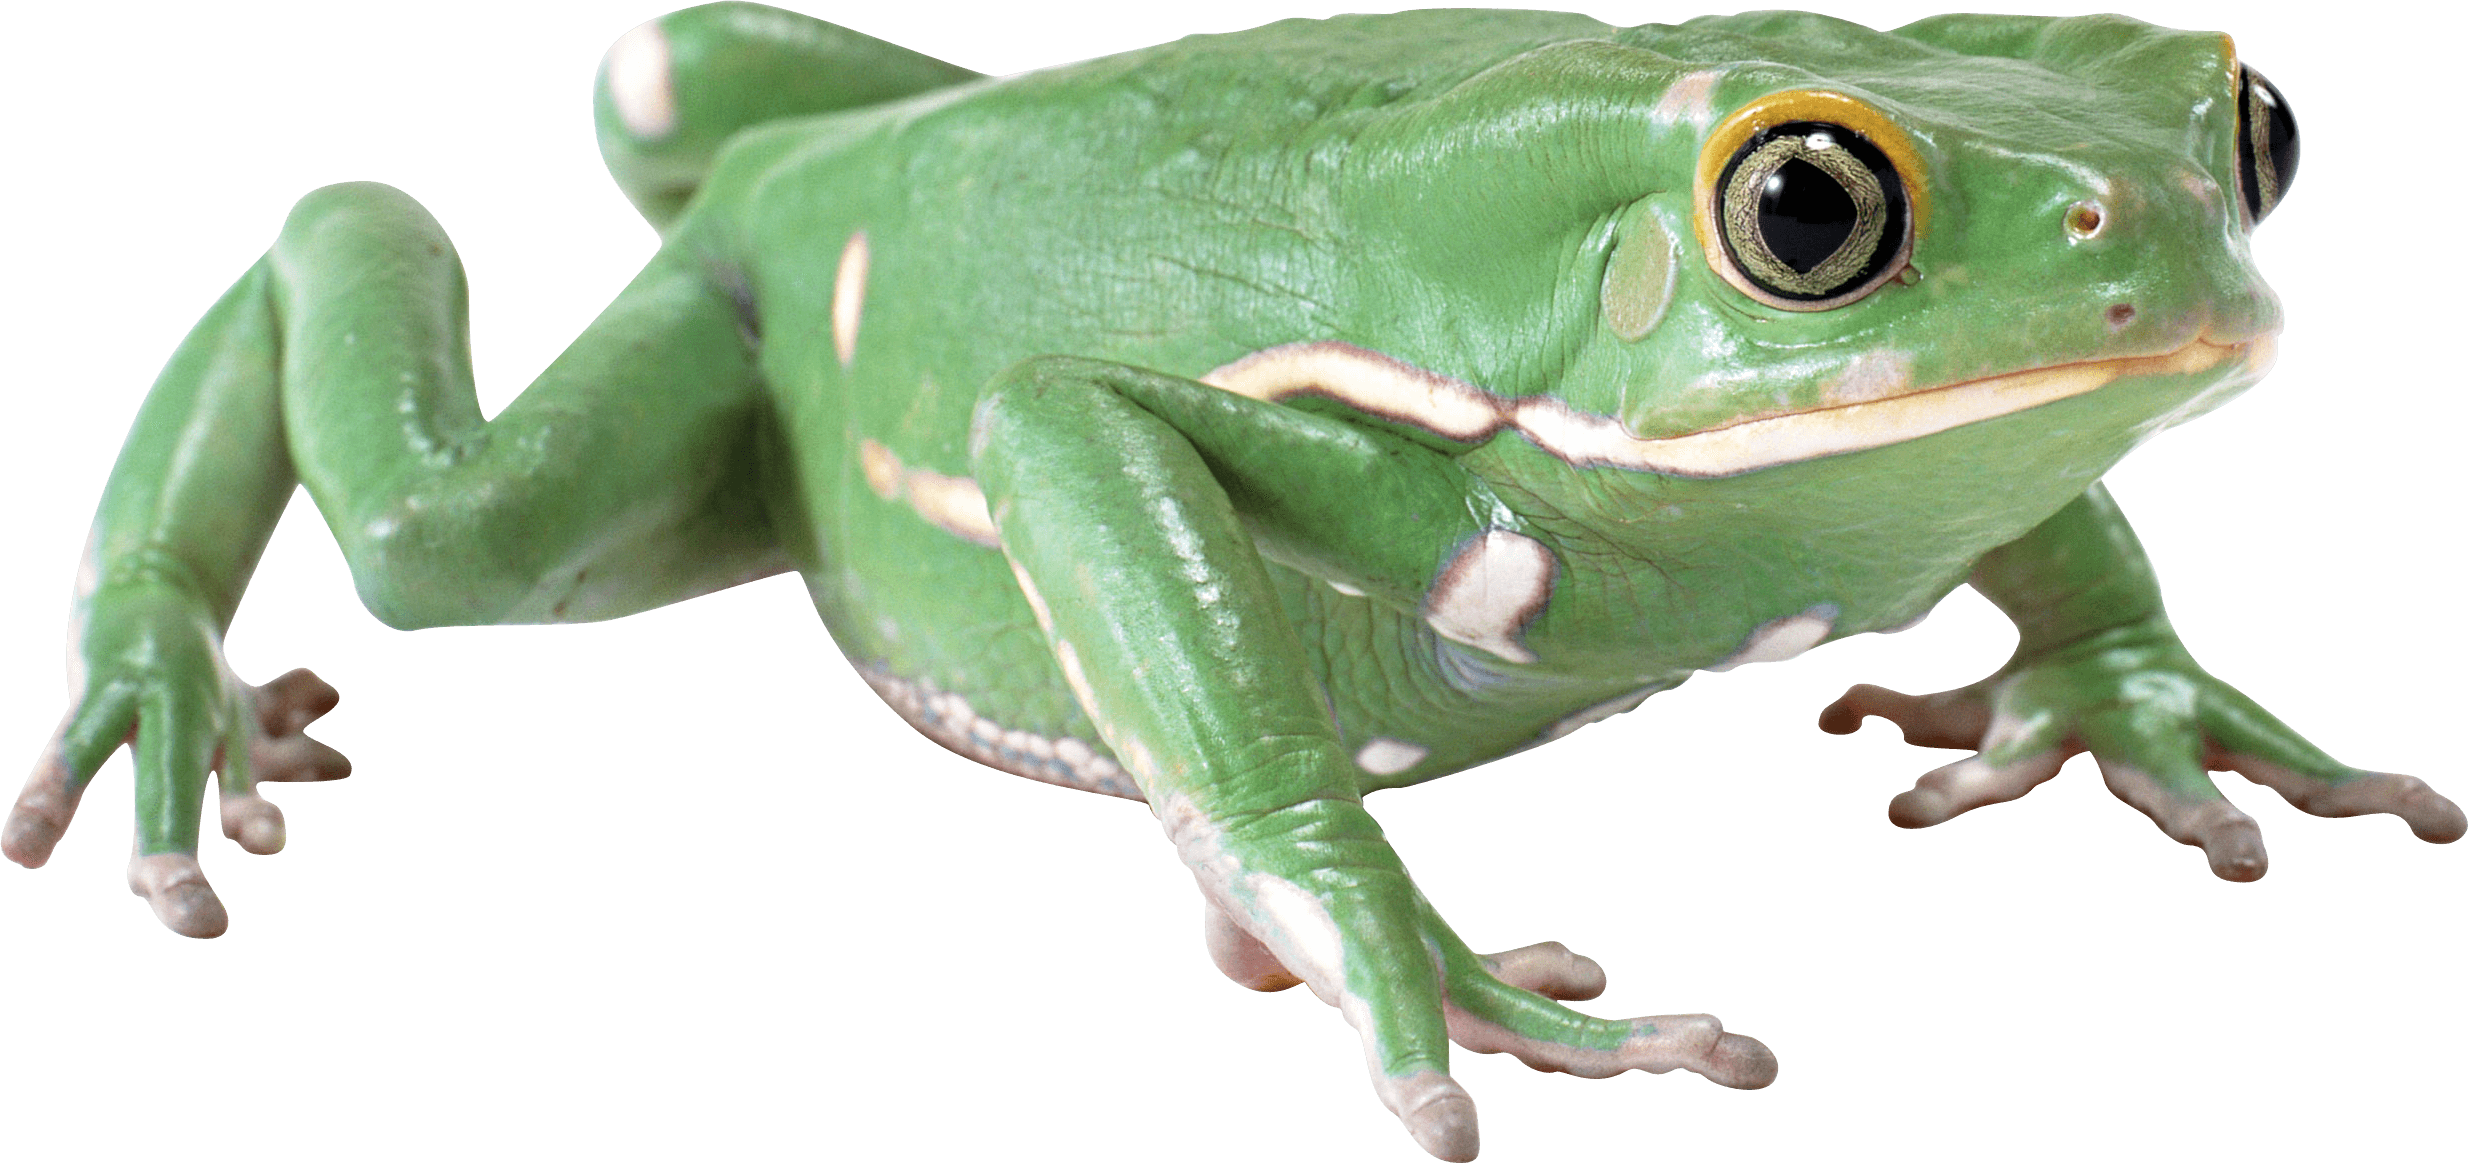 Png frog. Frogs transparent images stickpng